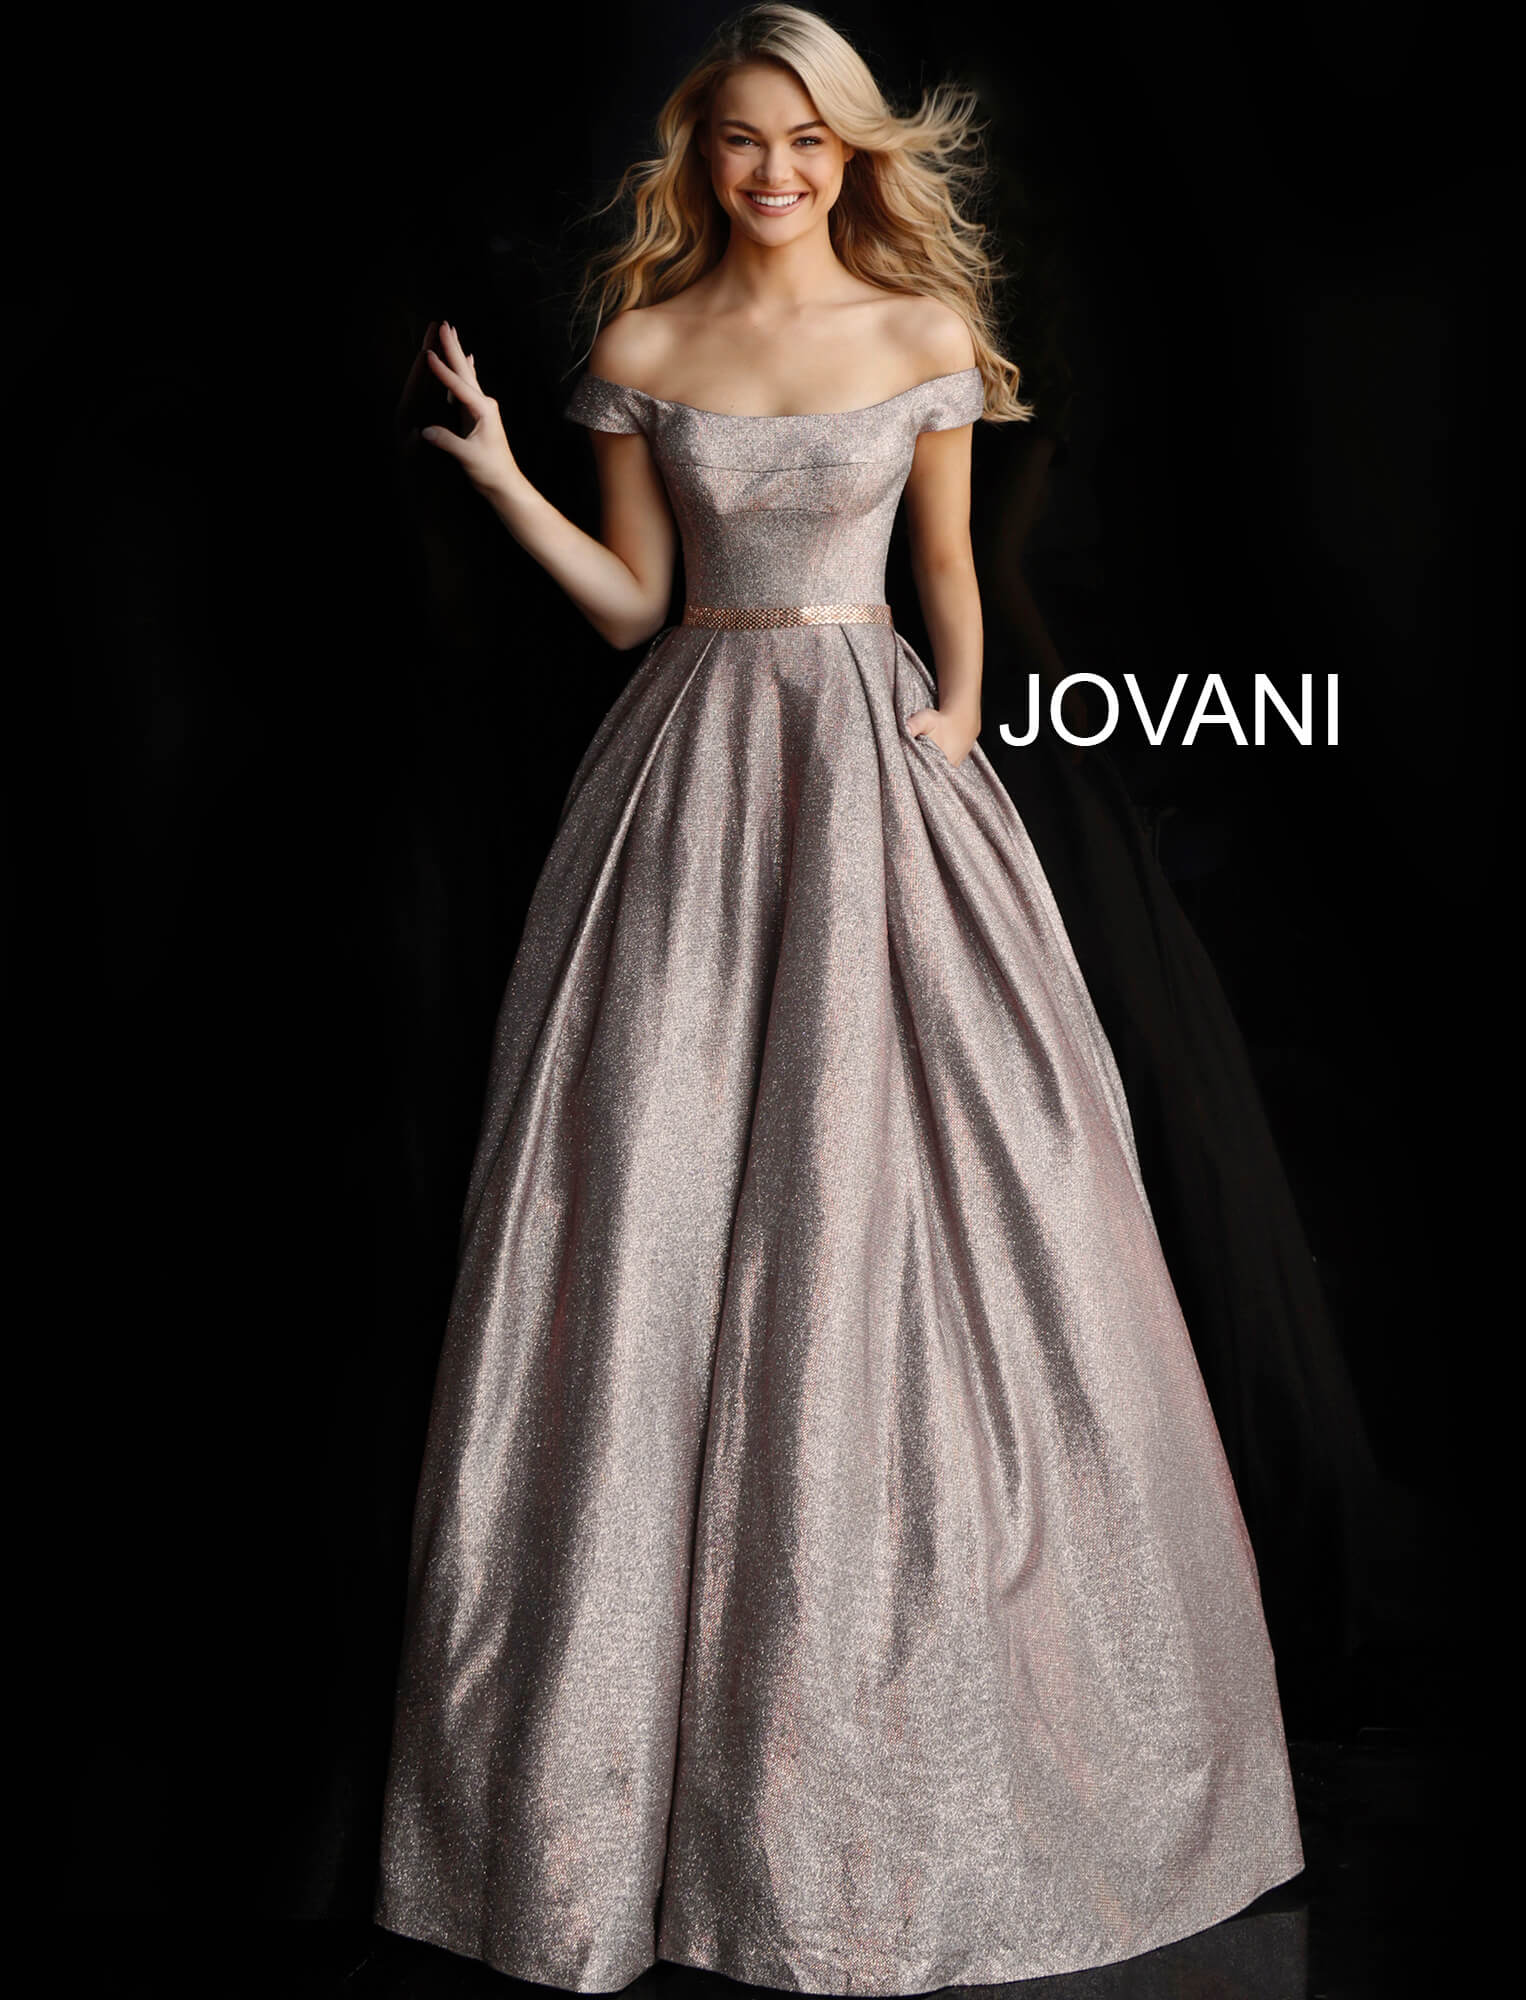 jovani Off the Shoulder Jovani Prom Ballgown 66950